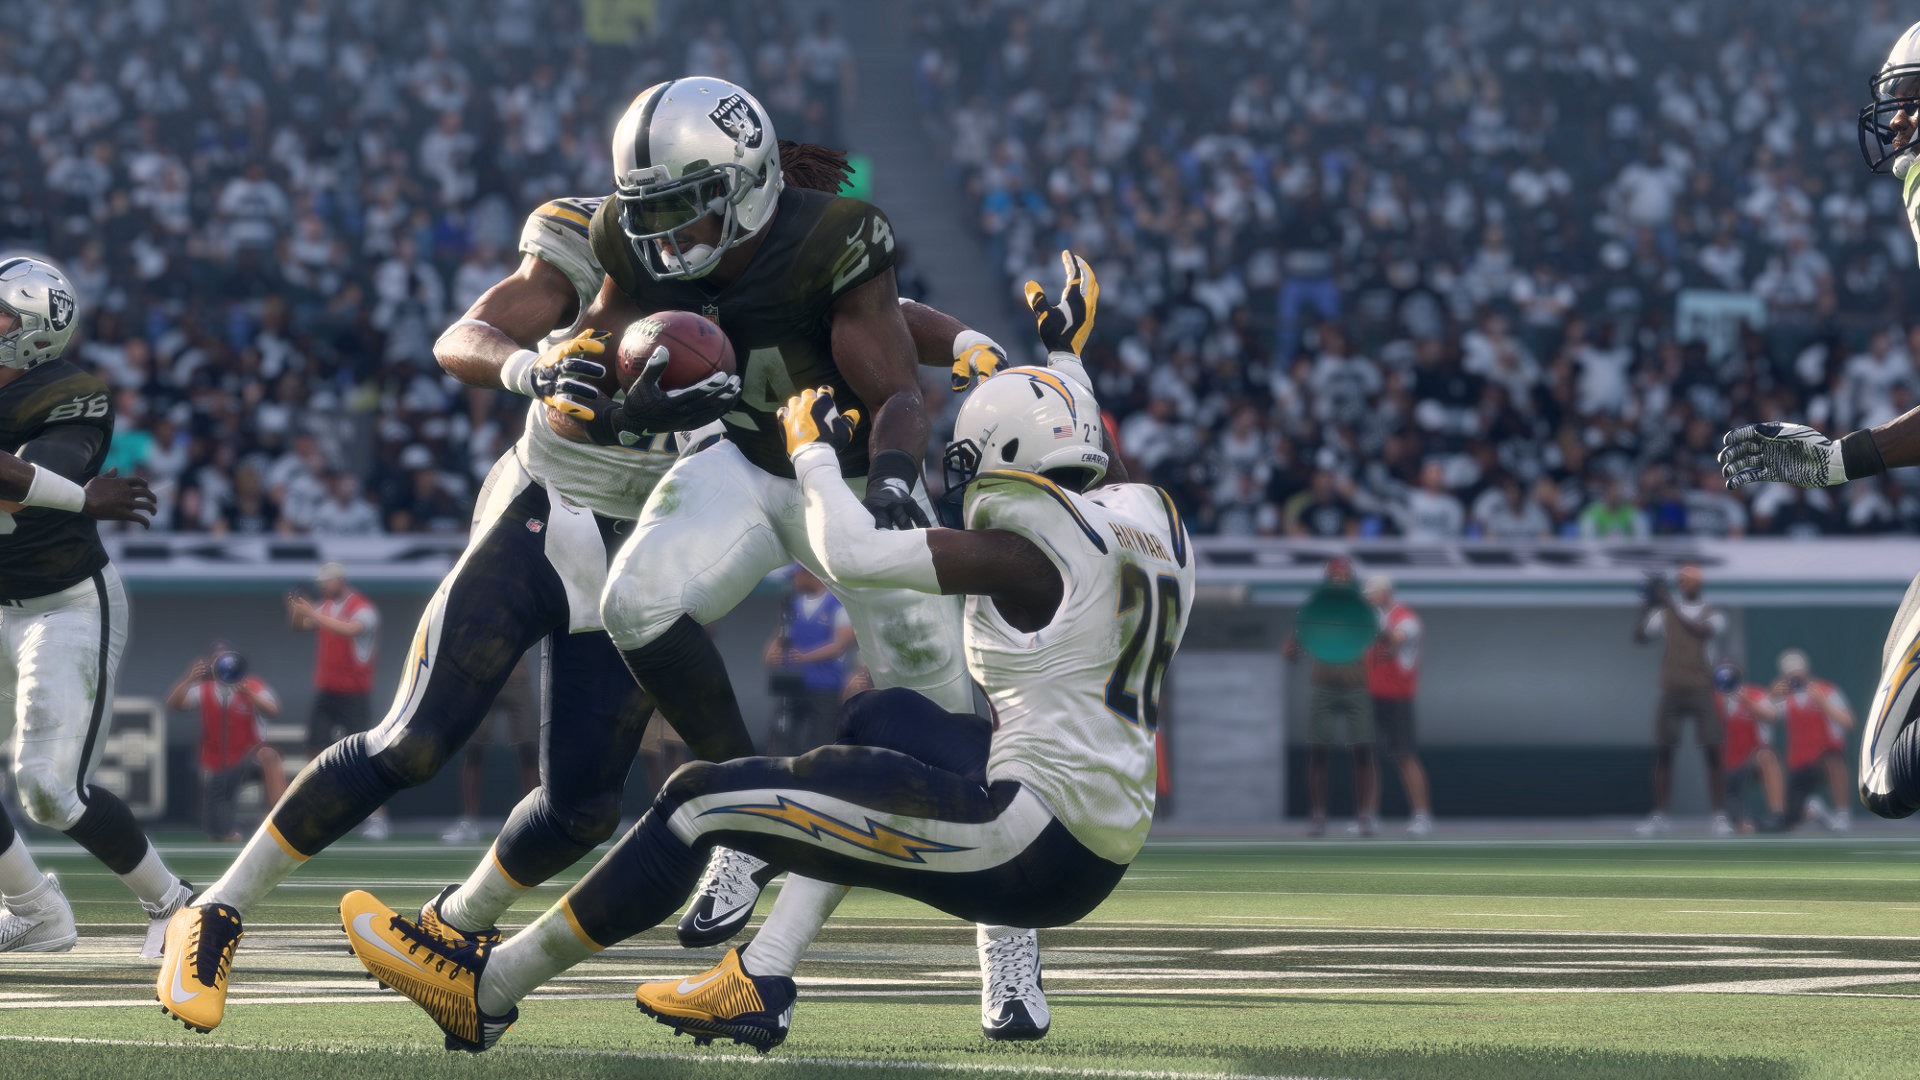 madden nfl 12 pc free download full version